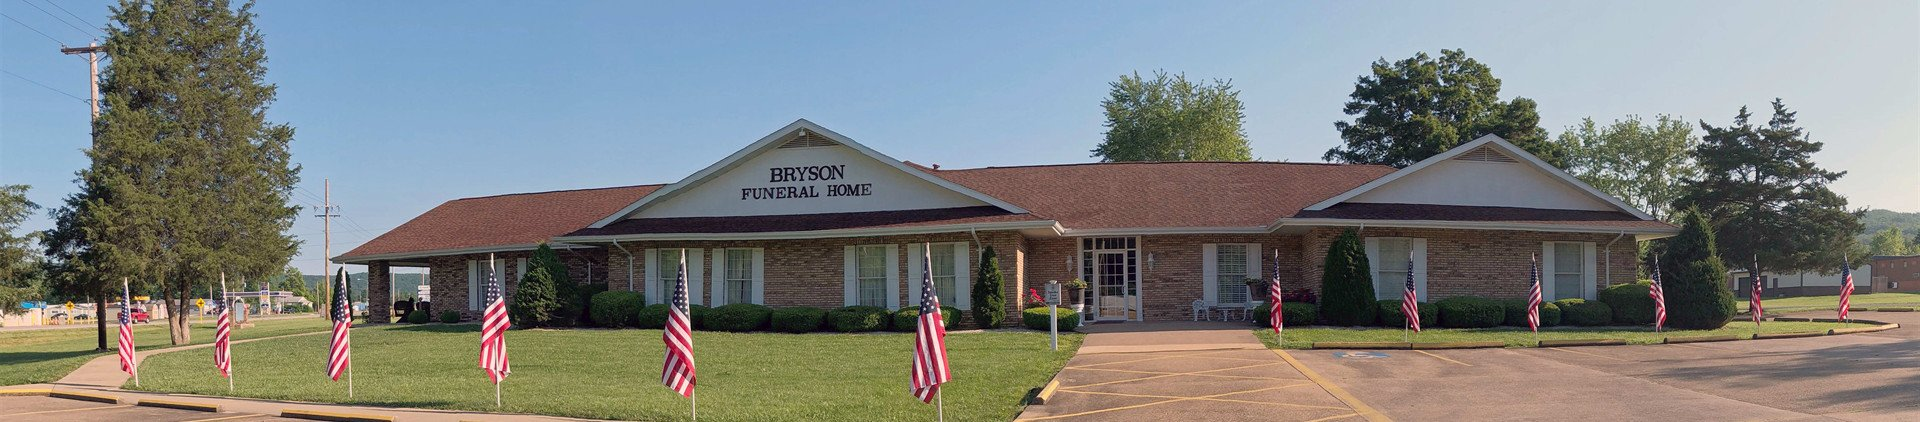 About Us   Bryson Funeral Home